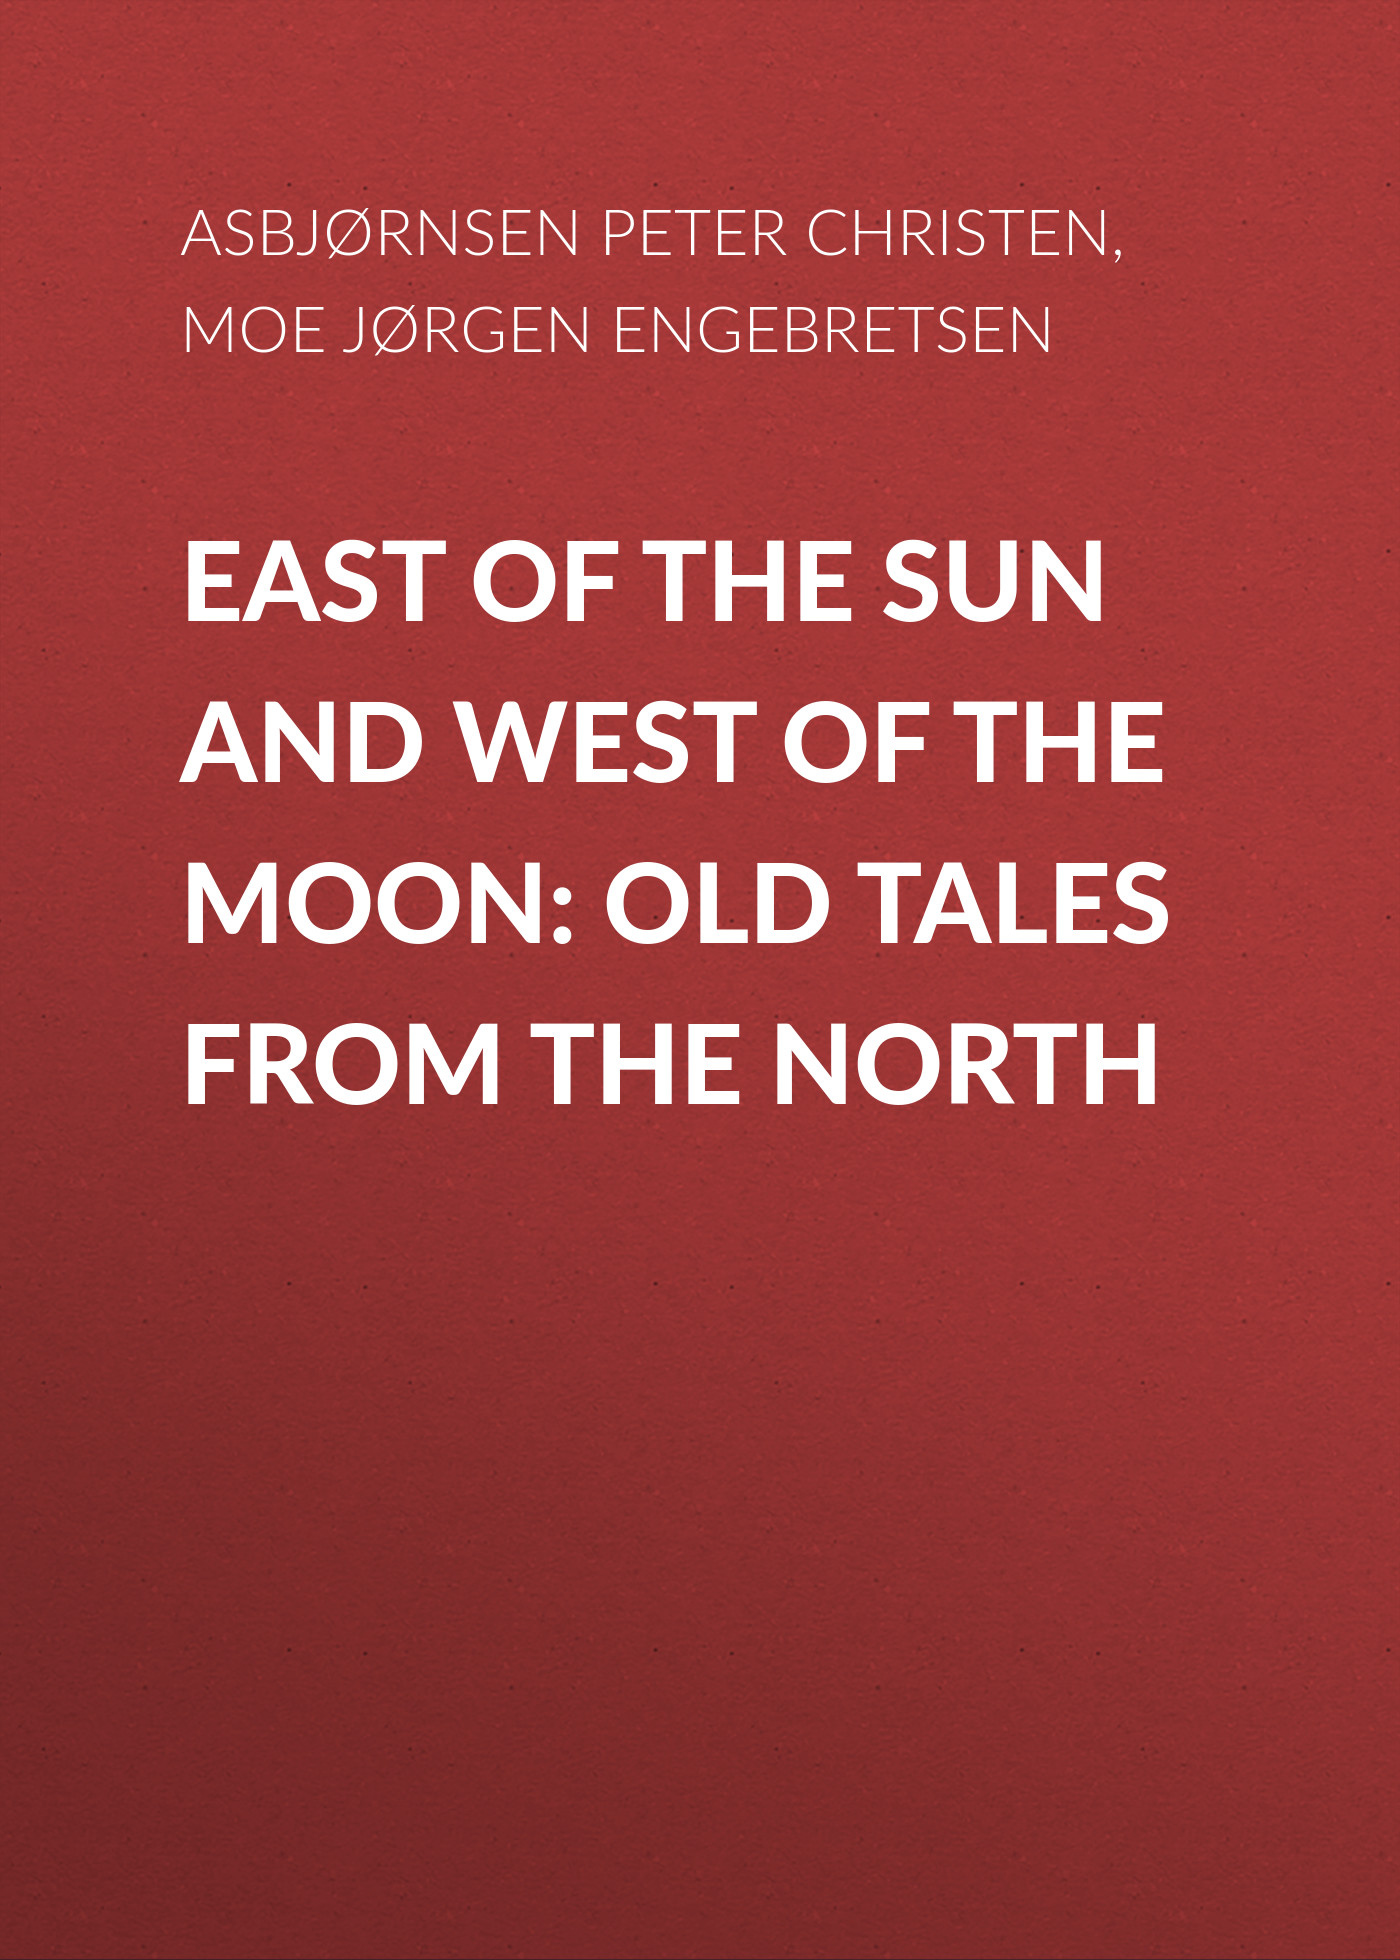 Asbjørnsen Peter Christen East of the Sun and West of the Moon: Old Tales from the North verne j from the earth to the moon and round the moon isbn 9785521057641